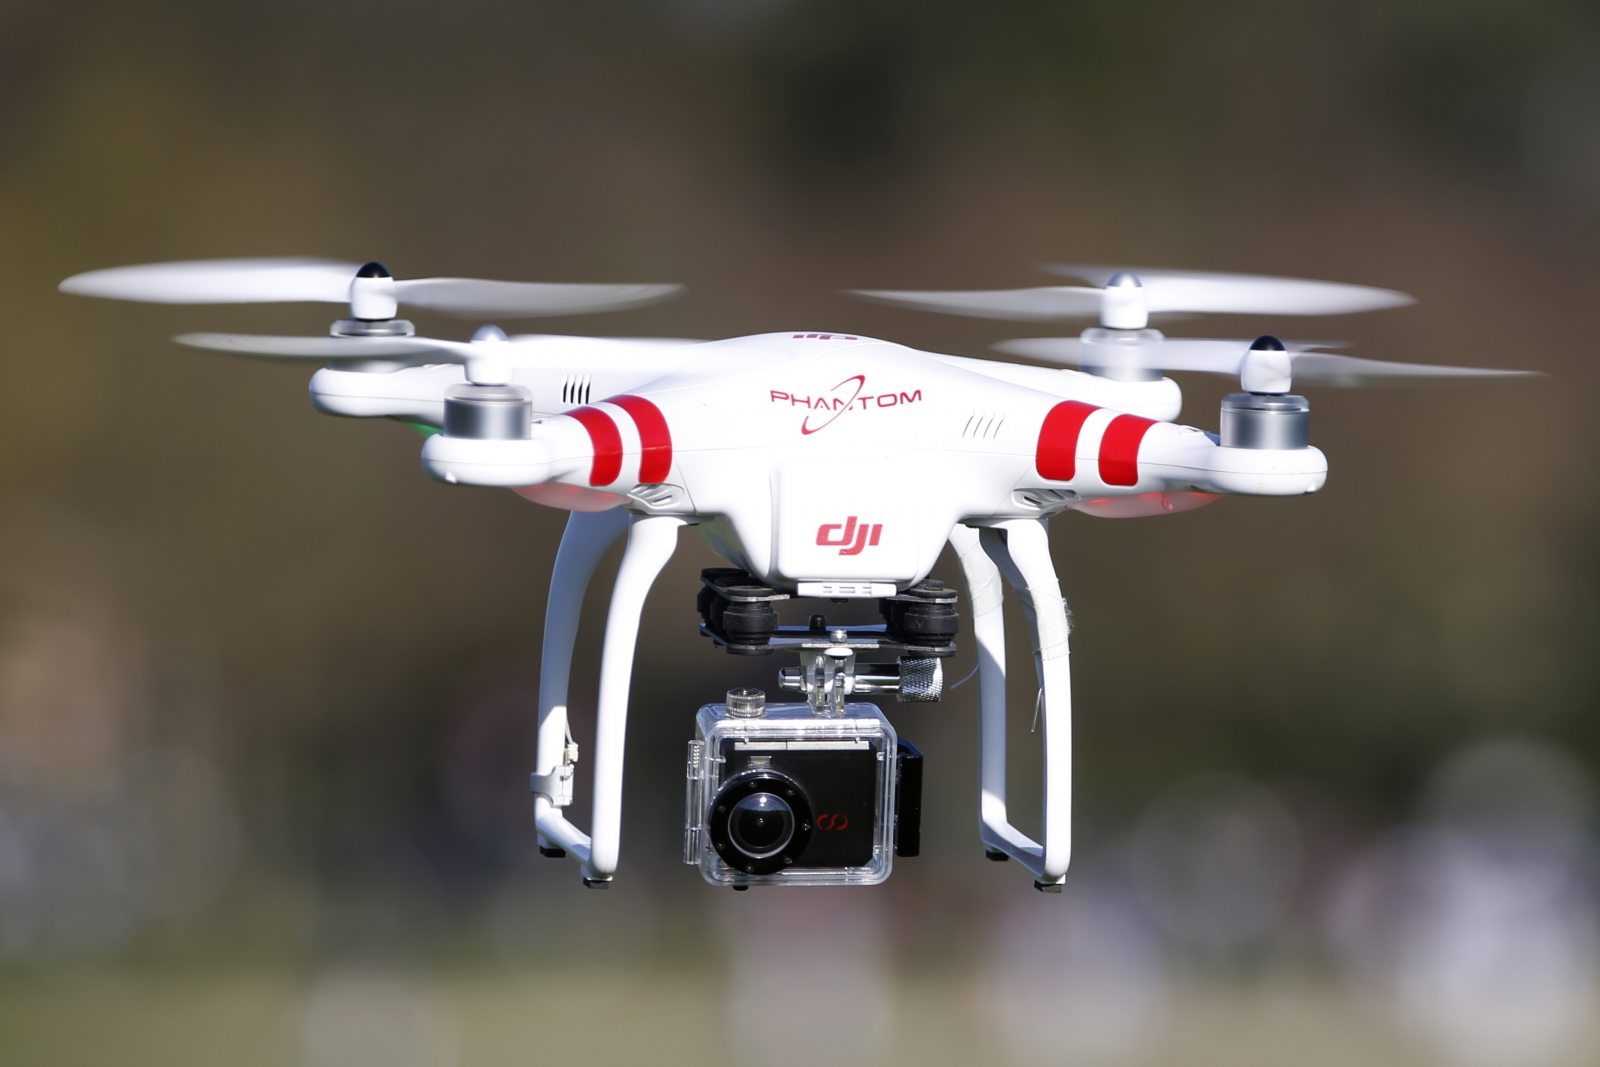 Drone narrowly avoid collision with two planes